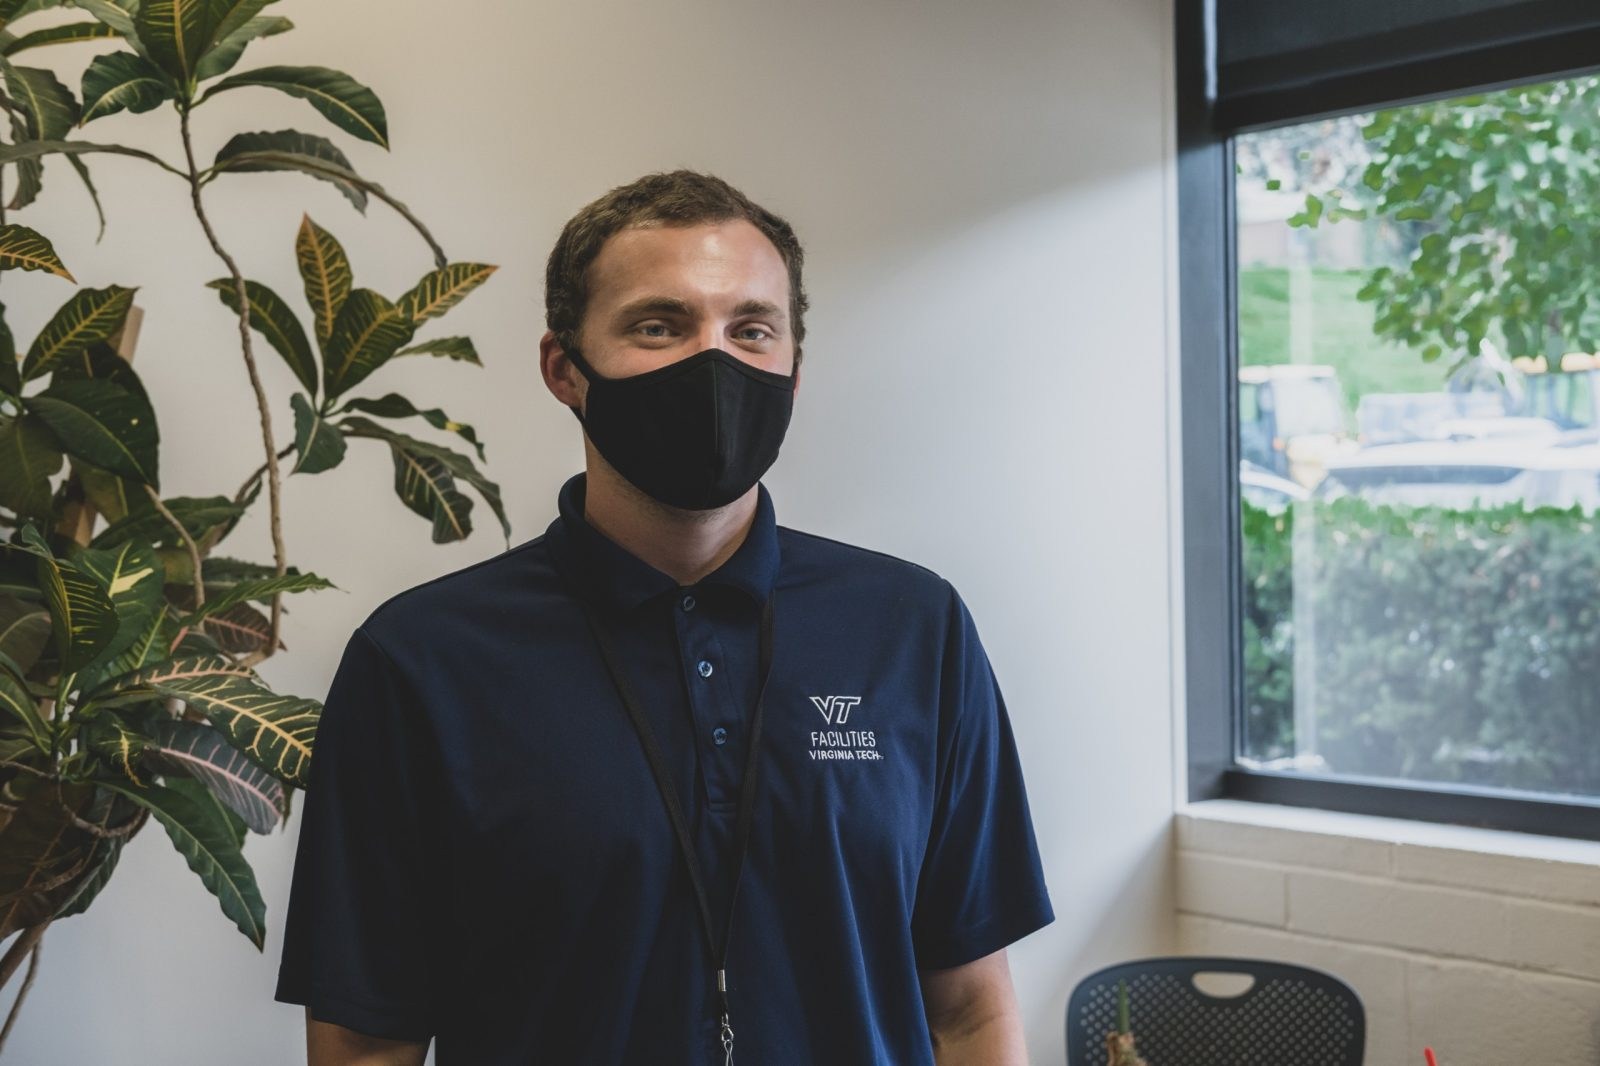 An employee wears a black mask and a dark blue housekeeping shirt.